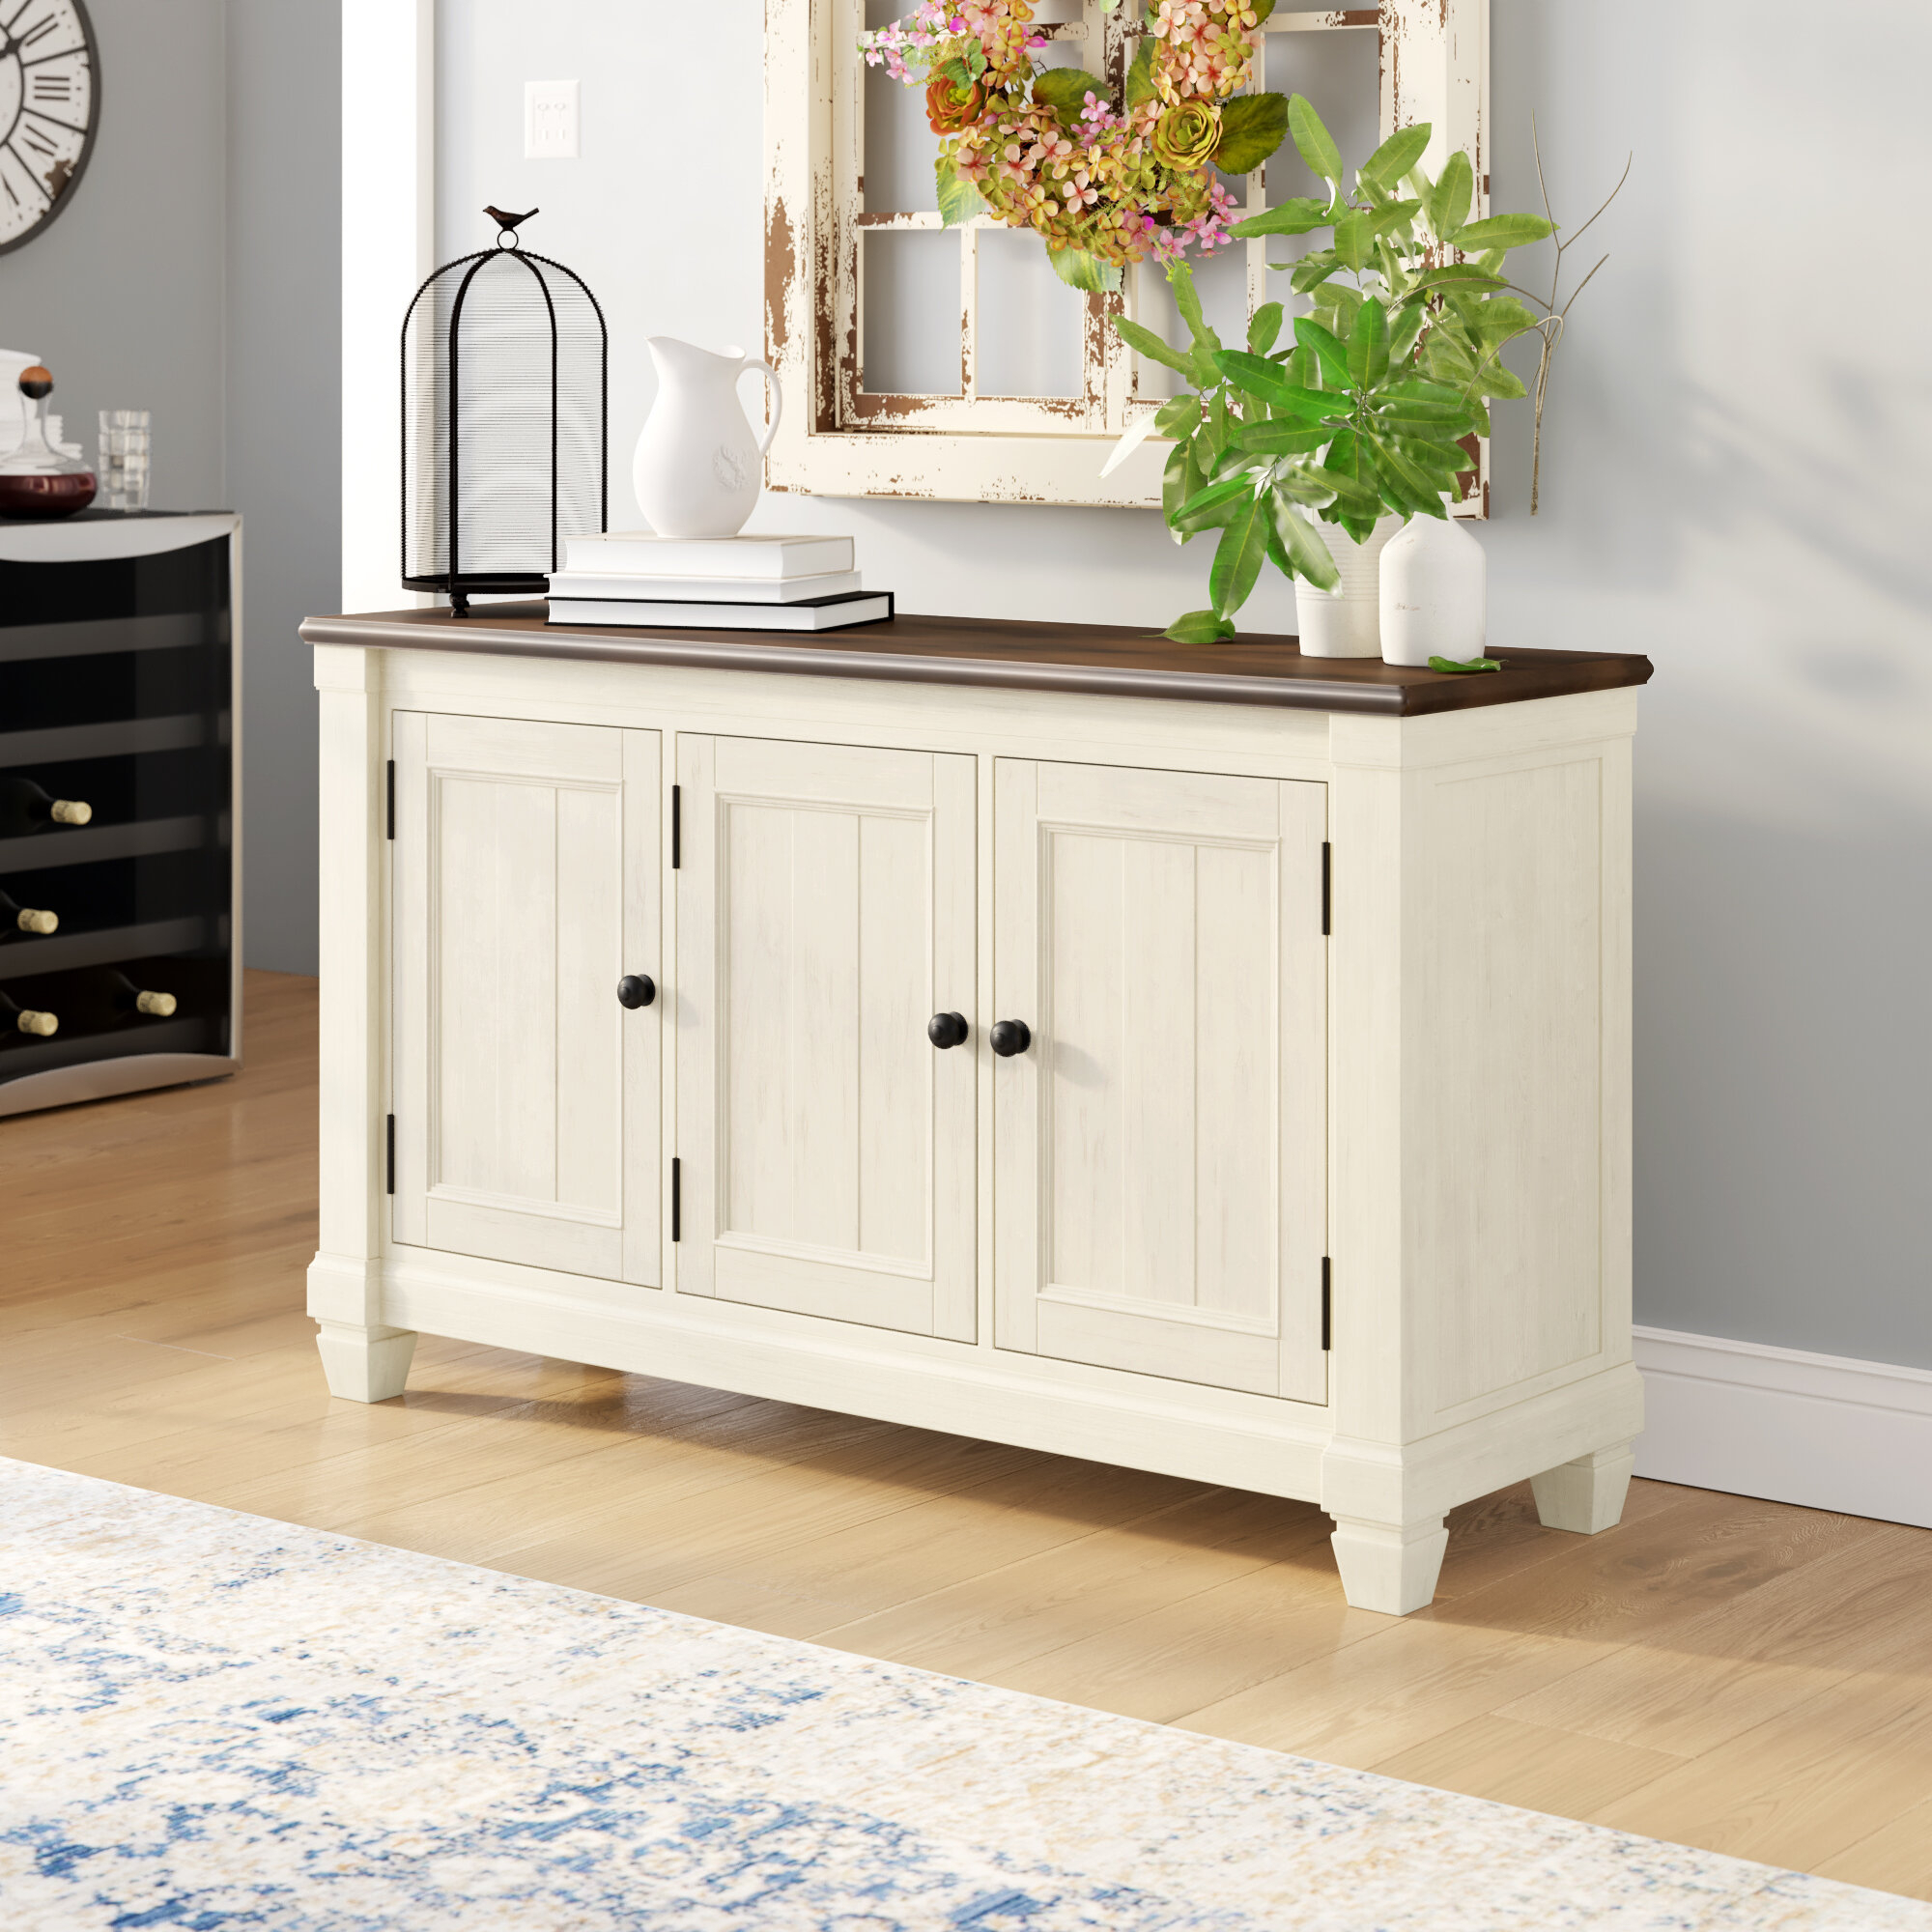 Carlie Server Throughout Cazenovia Charnley Sideboards (View 5 of 30)